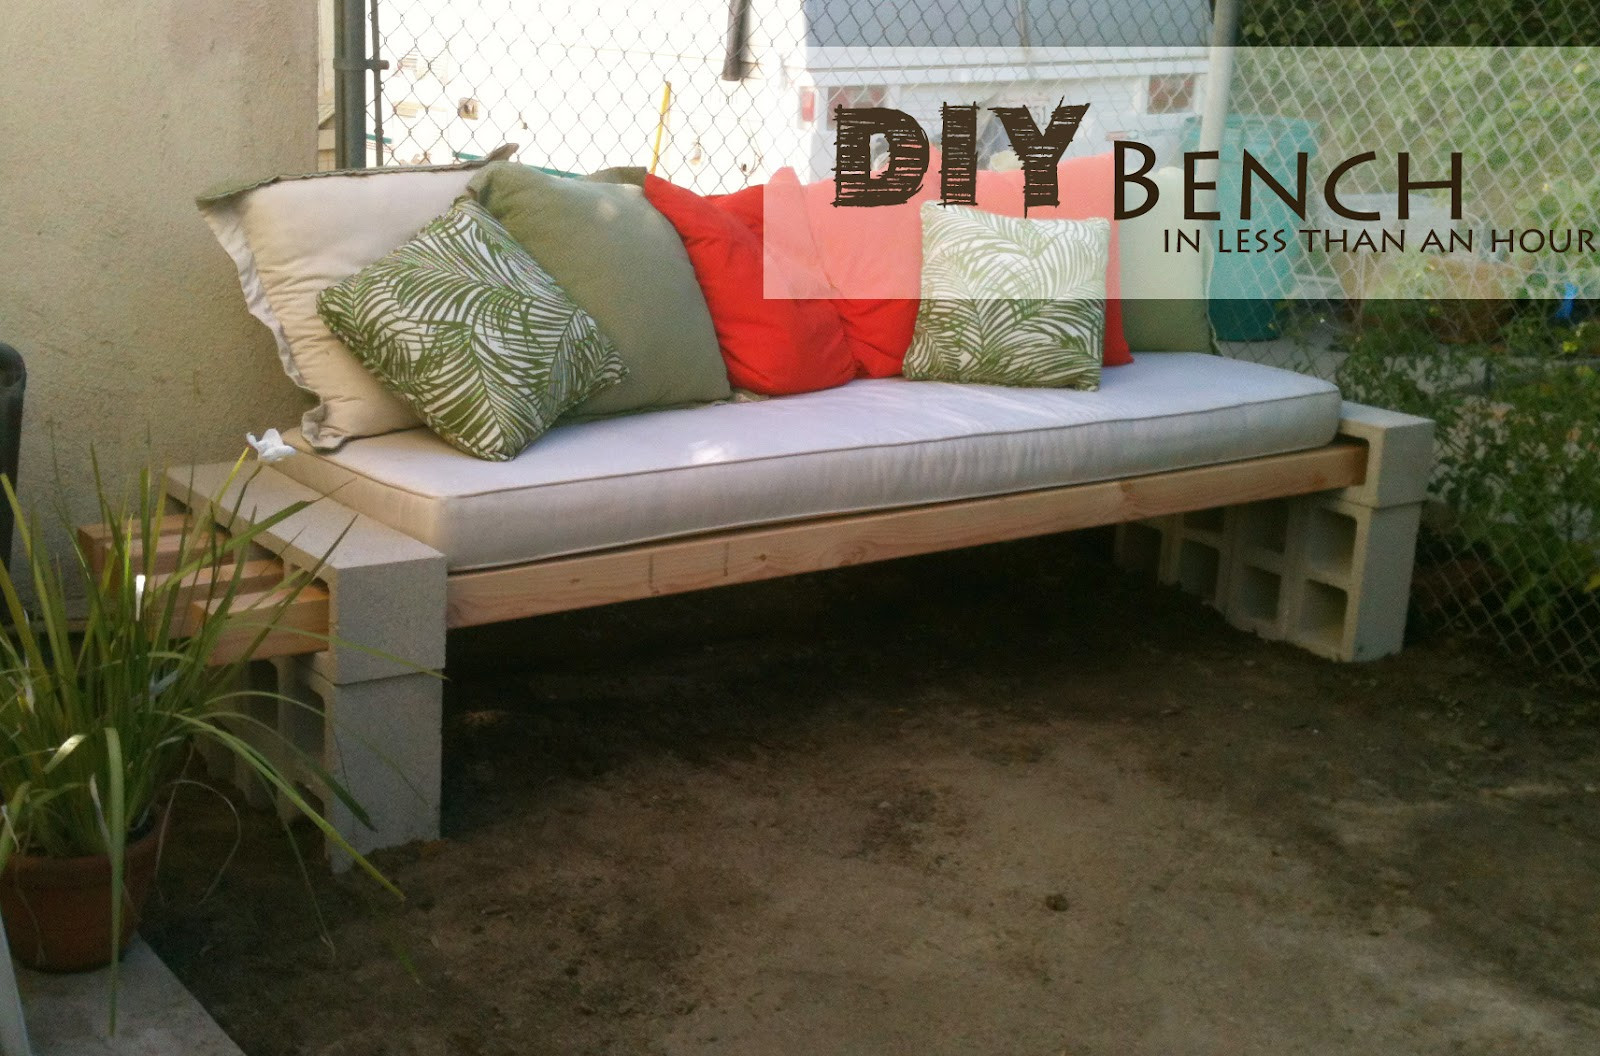 DIY Outdoor Workbench  DIY Outdoor Bench in less than an hour